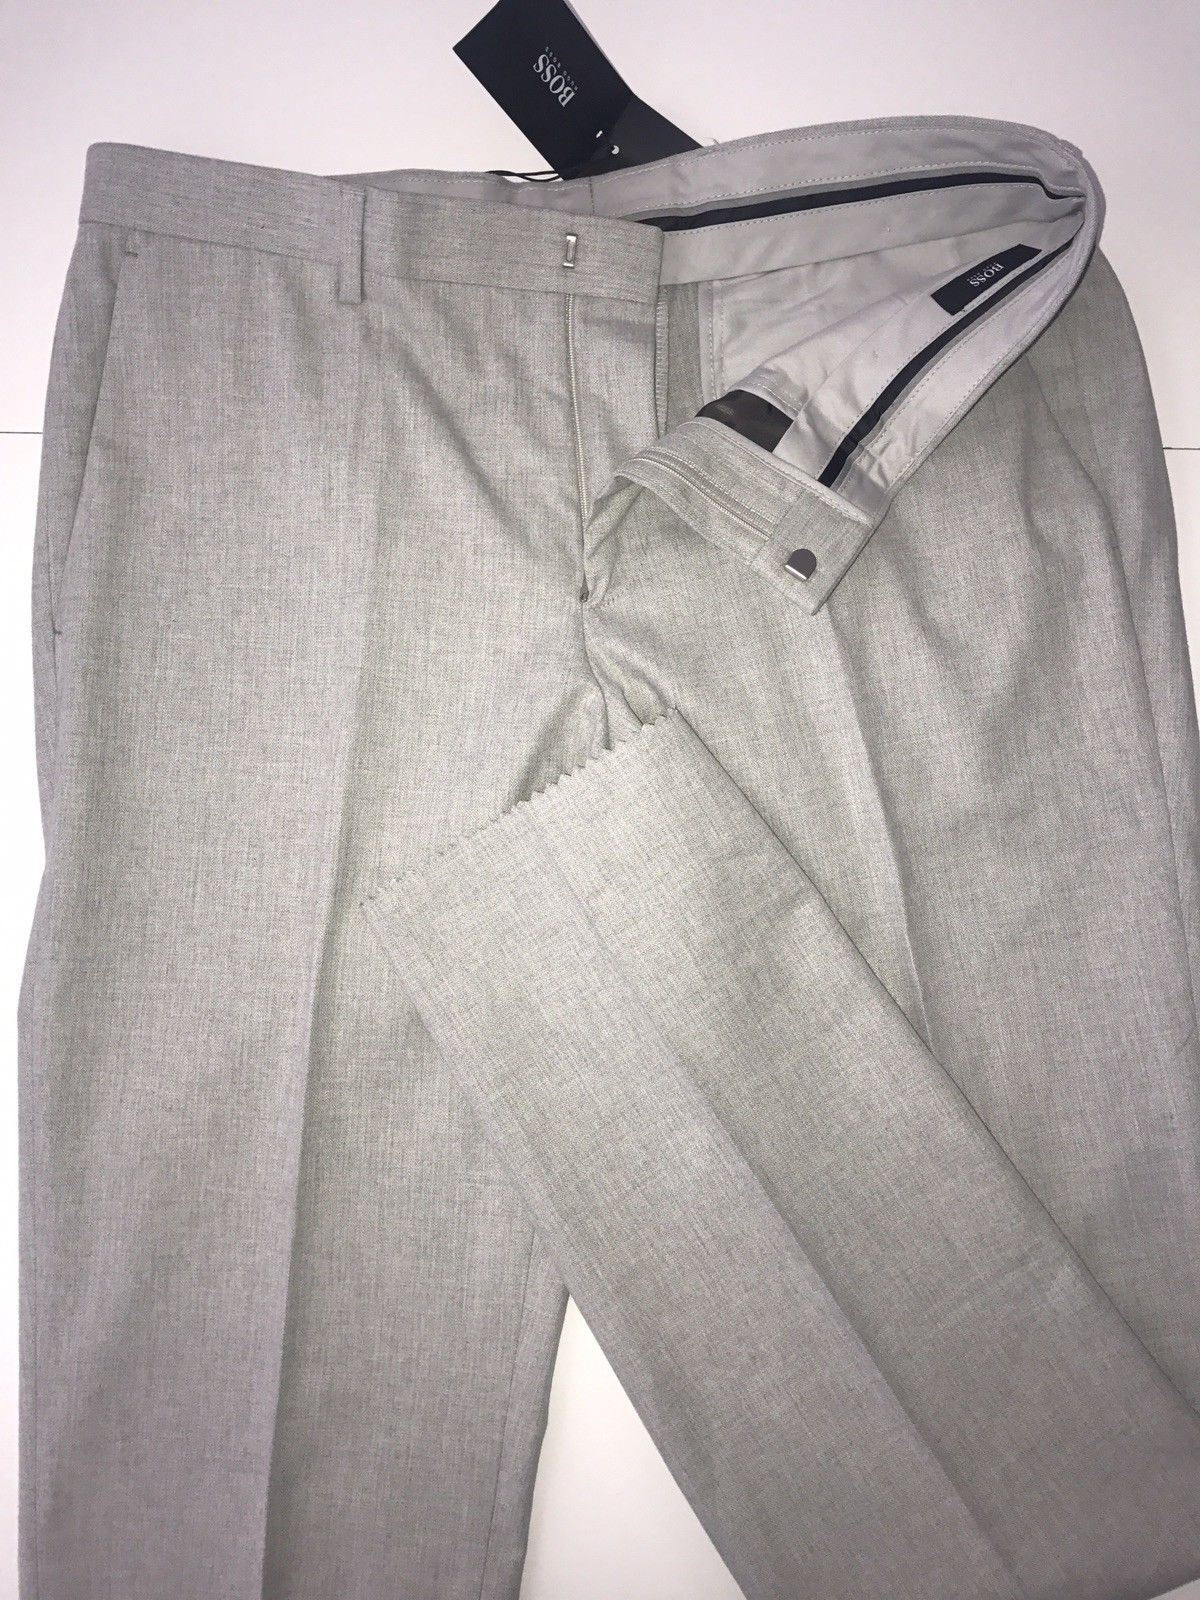 NWT $195 Boss Hugo Boss Melancey1 Mens Cotton Open White Dress Pants Size 34R US